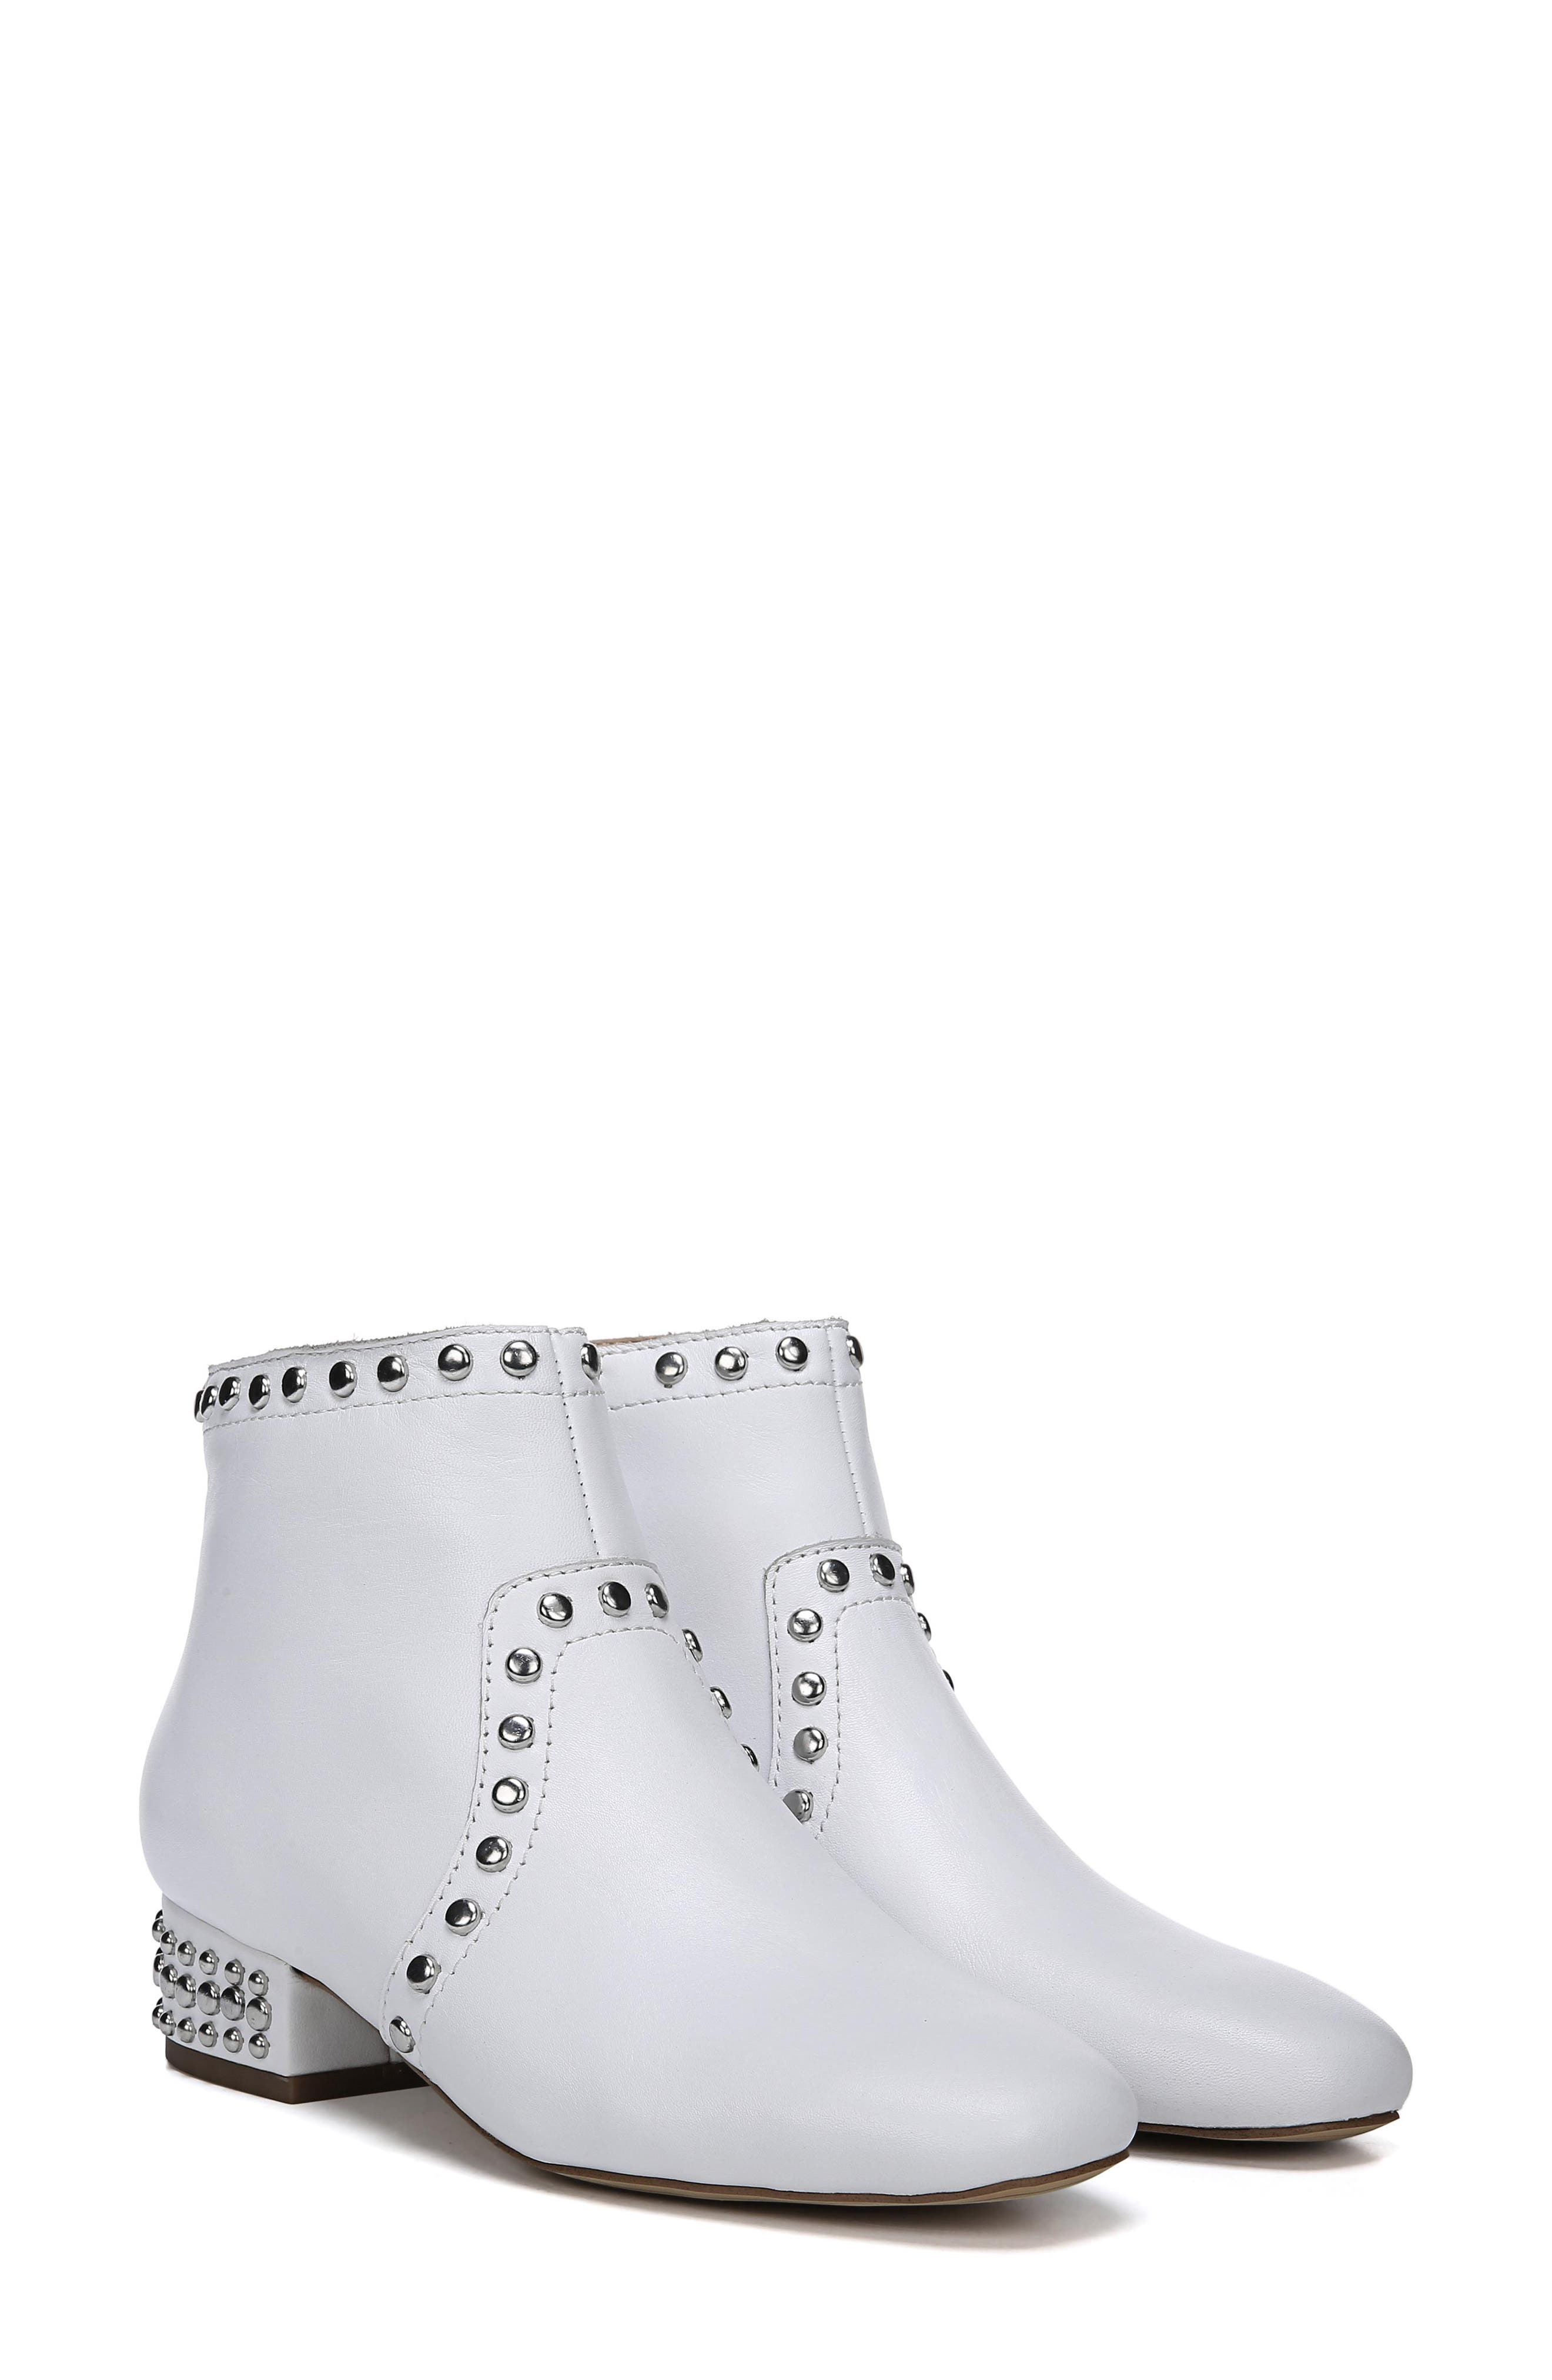 Lorin Studded Bootie,                             Alternate thumbnail 9, color,                             WHITE LEATHER